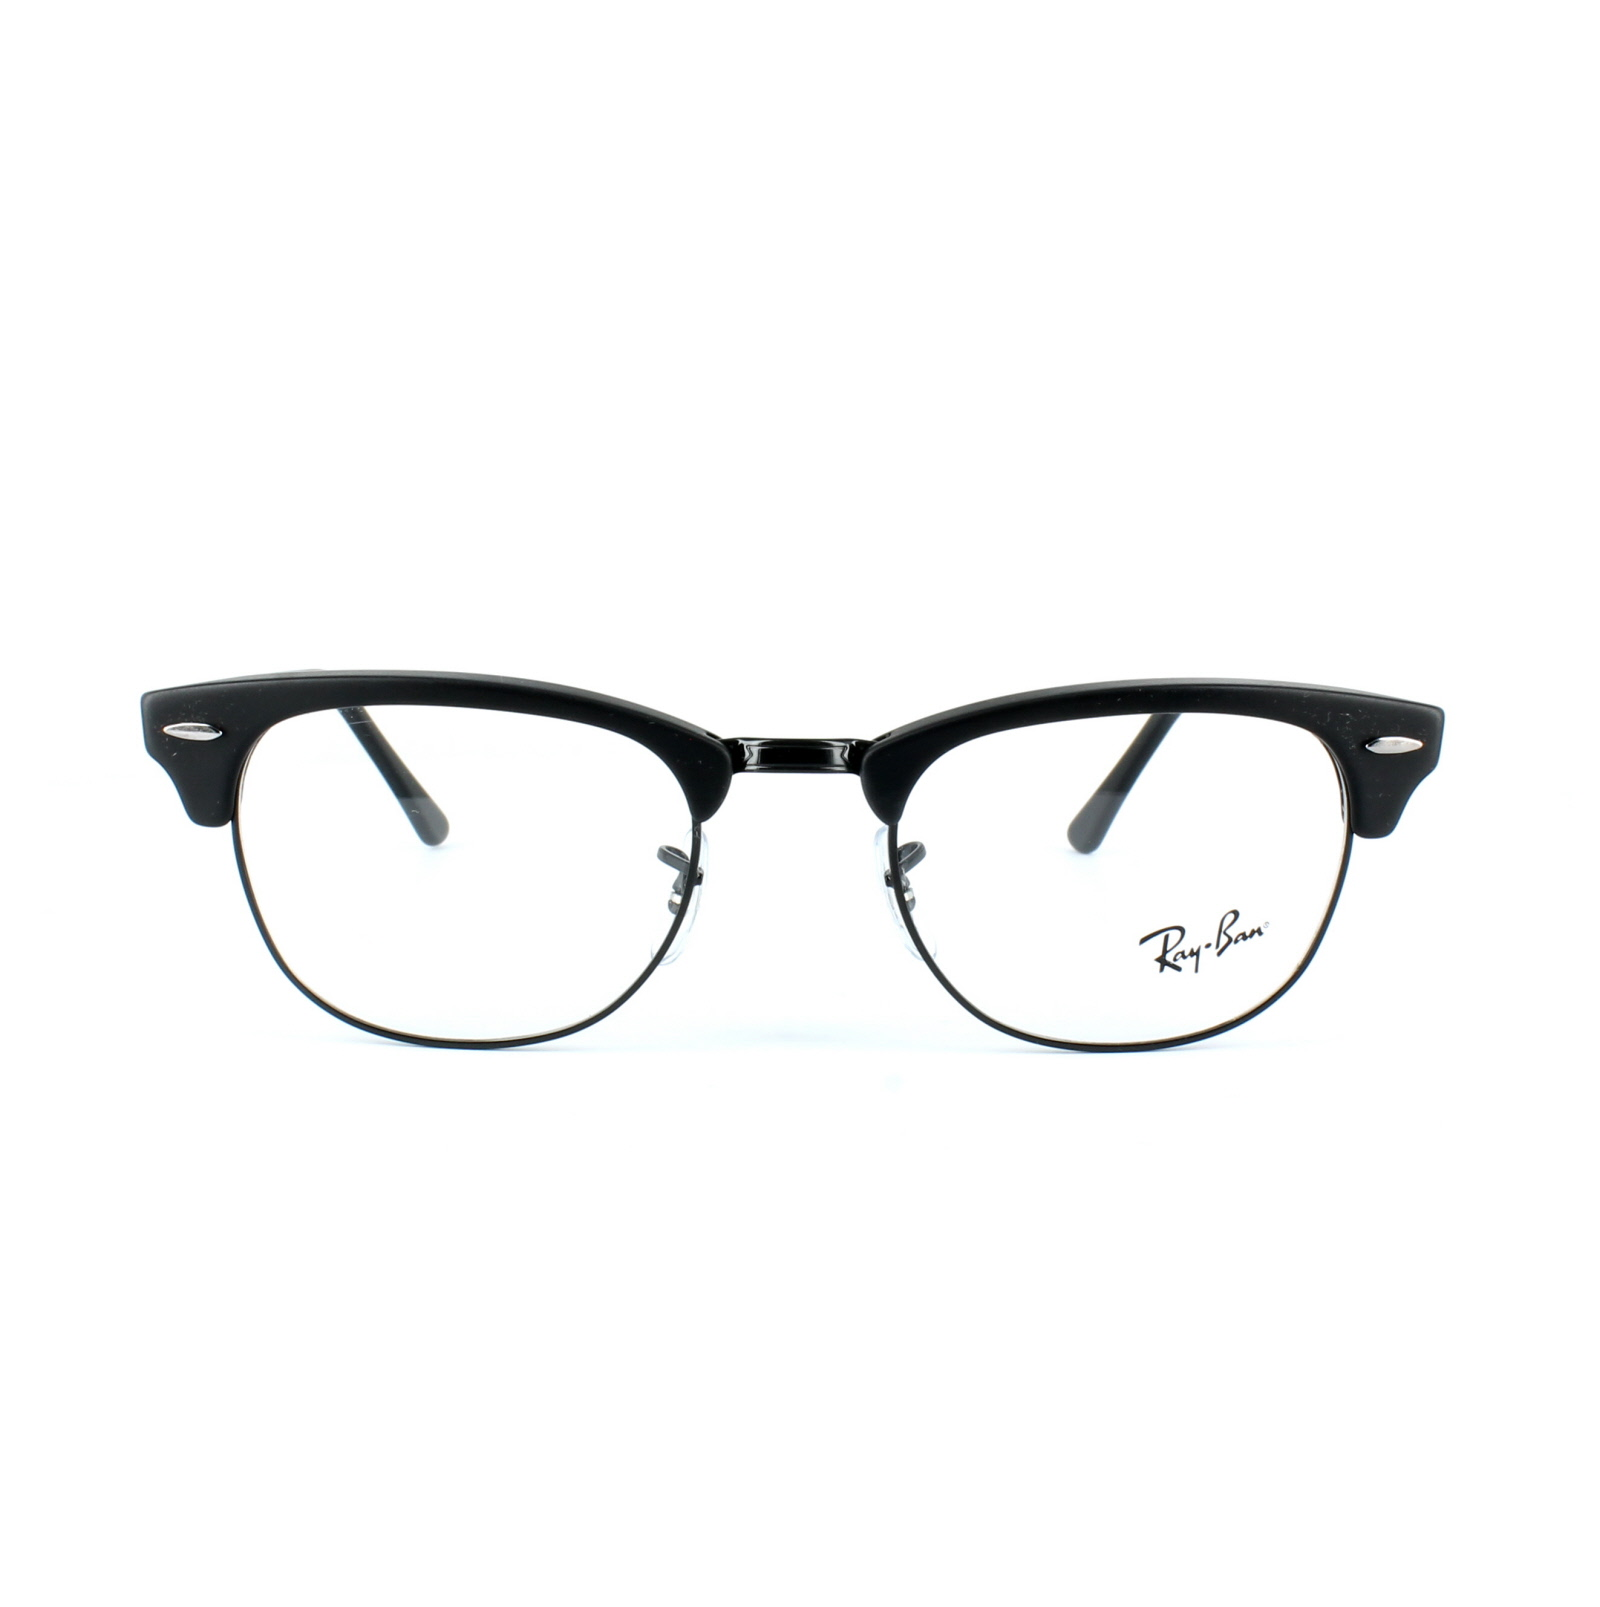 f2207112d7f Ray Ban Rx5154 51mm